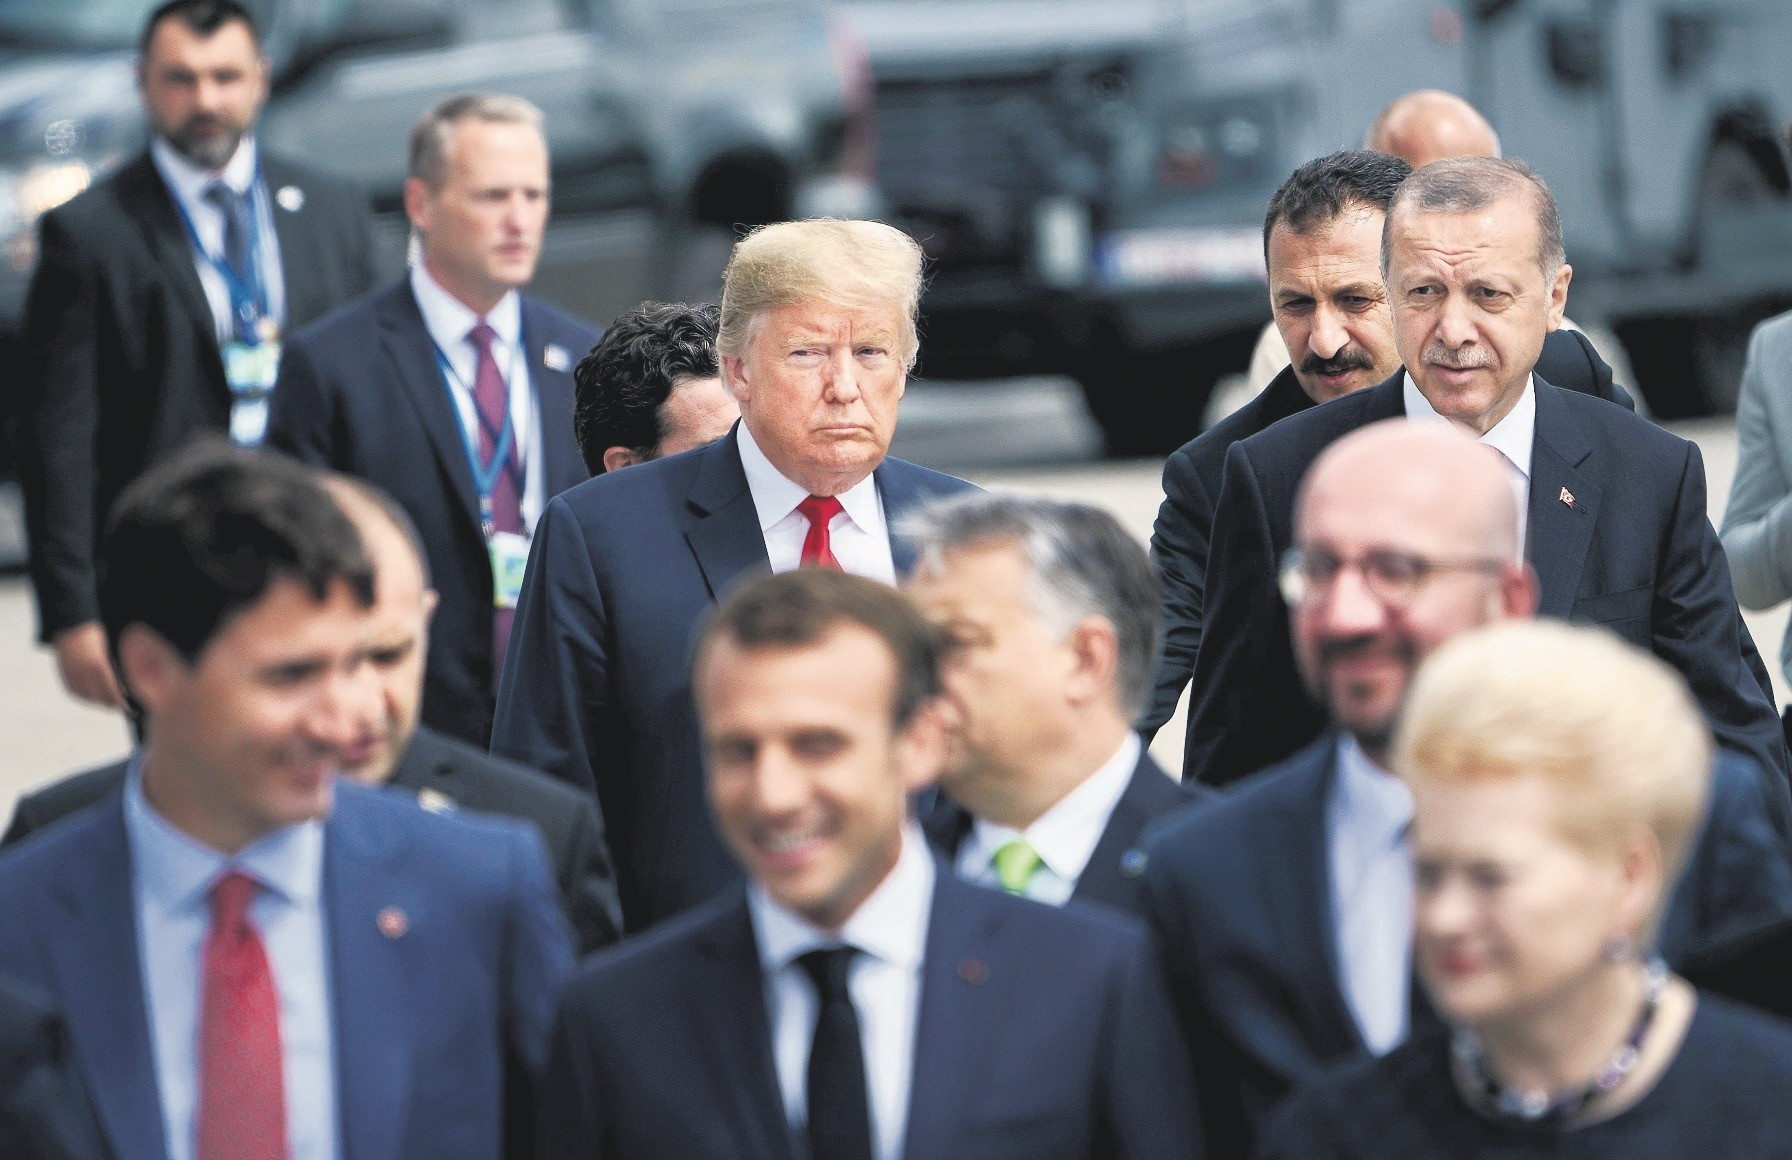 U.S. President Donald Trump (L) and President Recep Tayyip Erdou011fan (R) follow other leaders to a u201cfamily photo u201cduring the summit at NATO headquarters, Brussels, July 11.